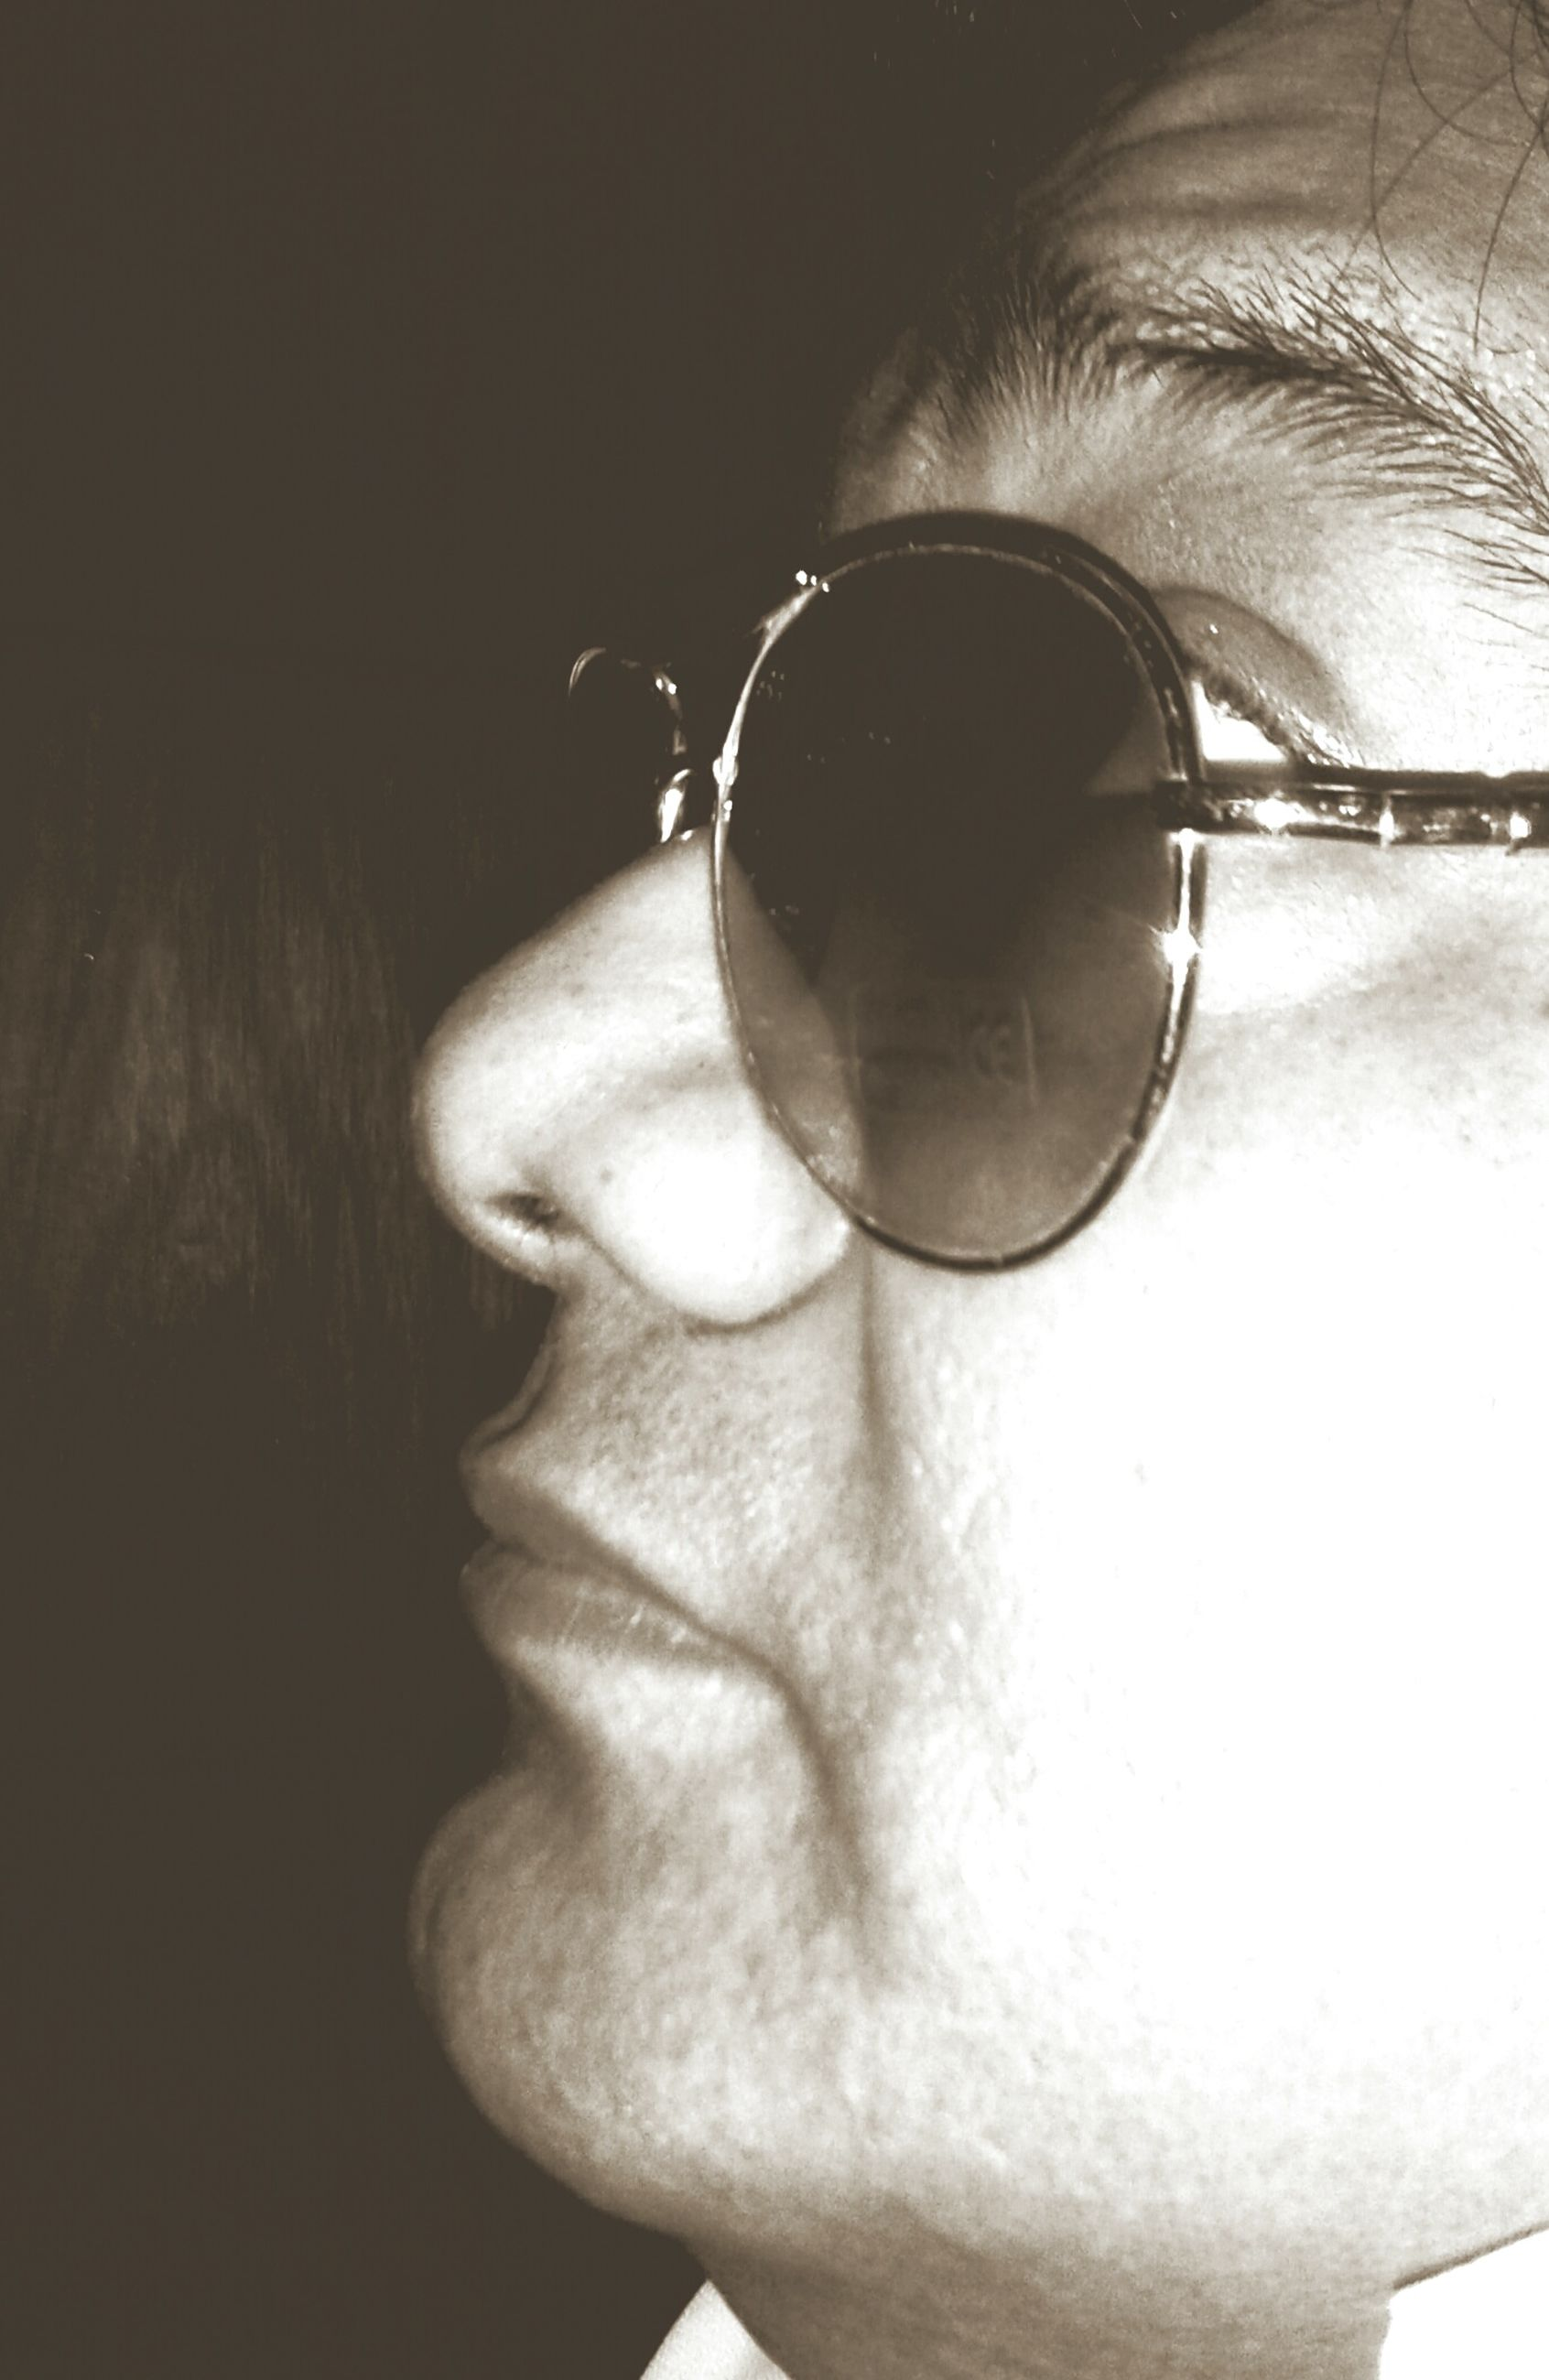 indoors, close-up, lifestyles, young adult, headshot, human face, sunglasses, person, leisure activity, front view, holding, eyeglasses, part of, looking at camera, reflection, portrait